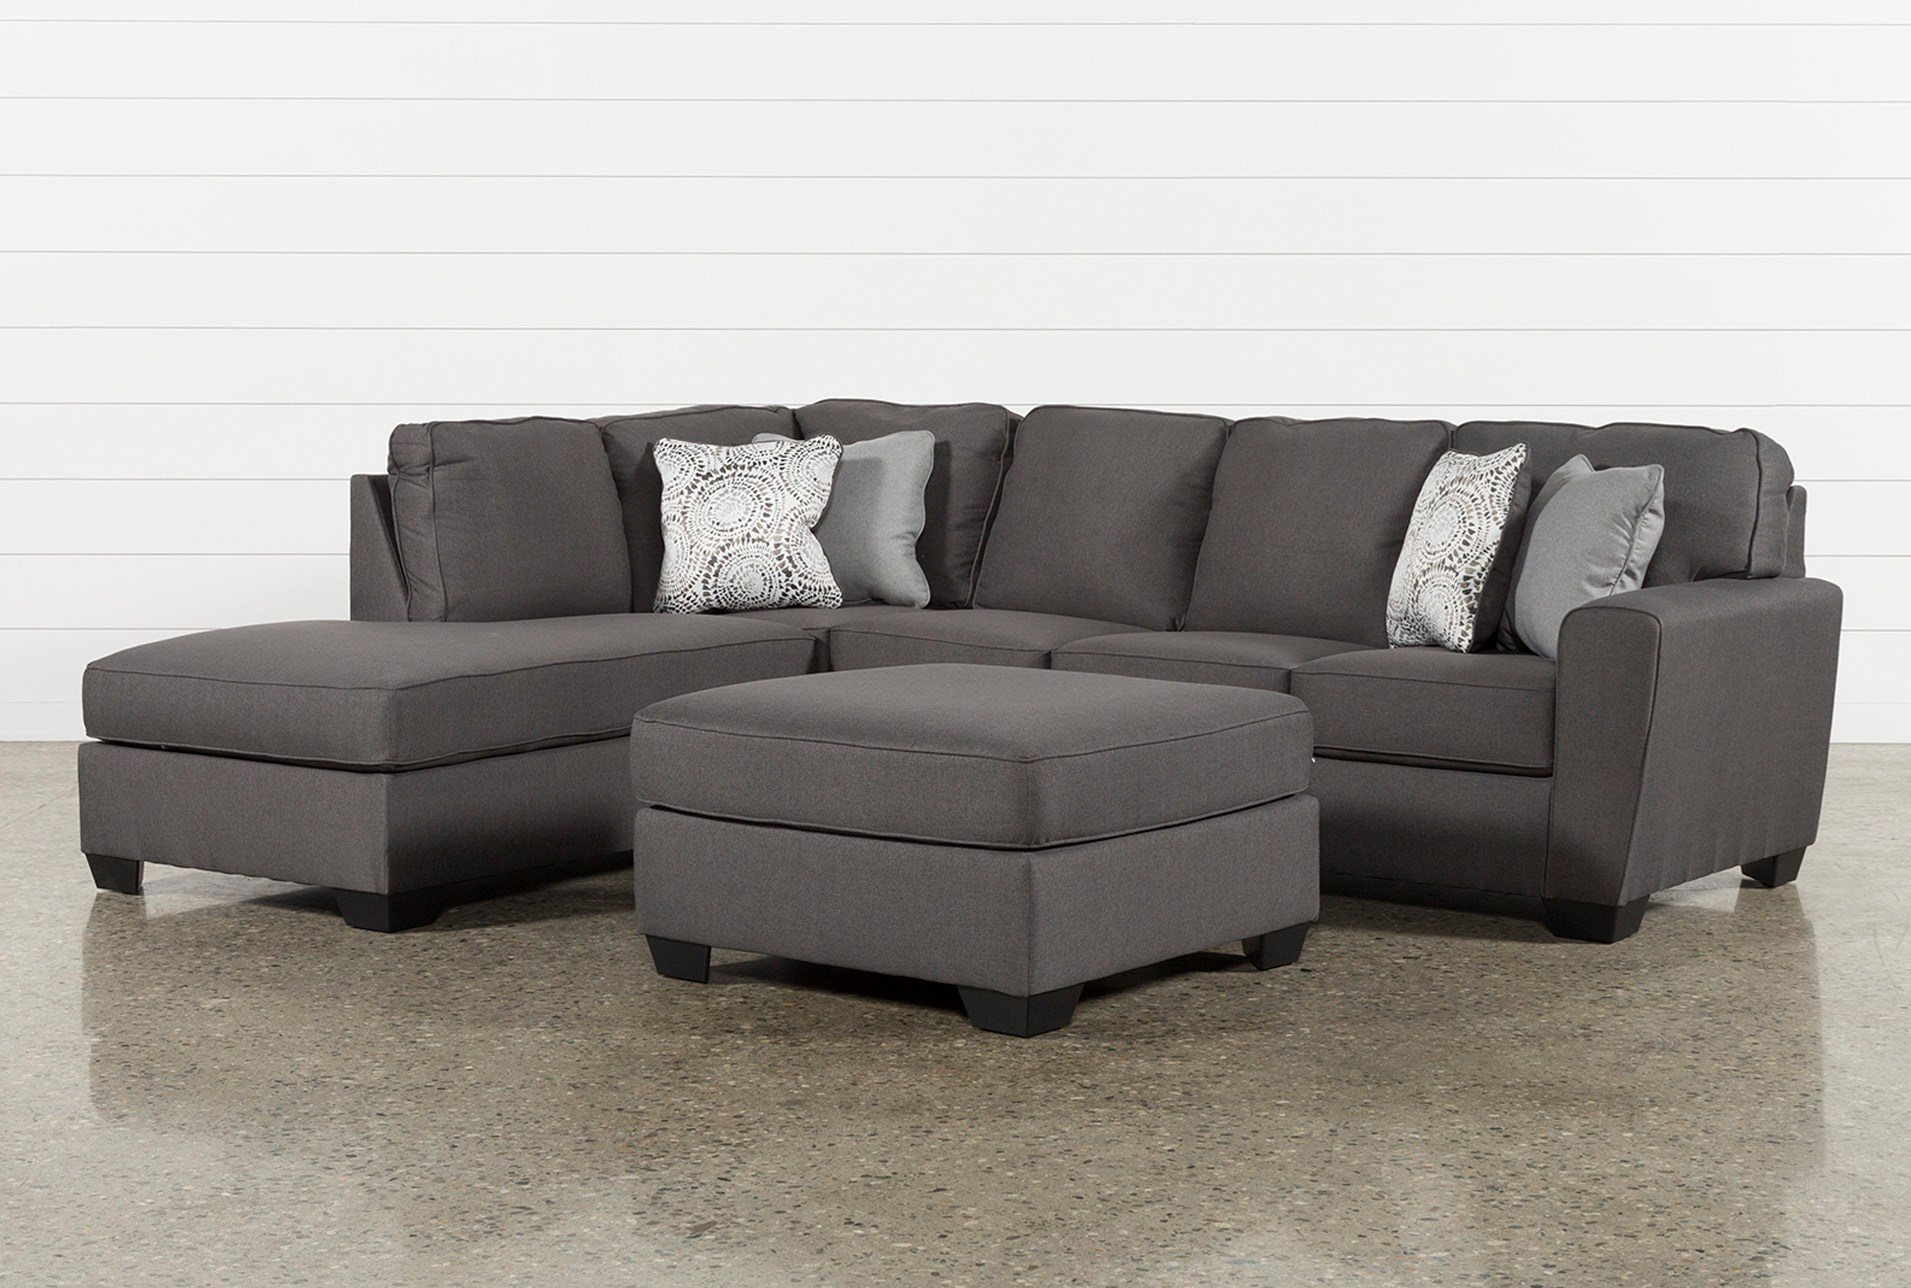 Mcdade Graphite Left Facing Sectional With Oversized Accent Ottoman Qty 1 Has Been Successfully Added To Your Cart